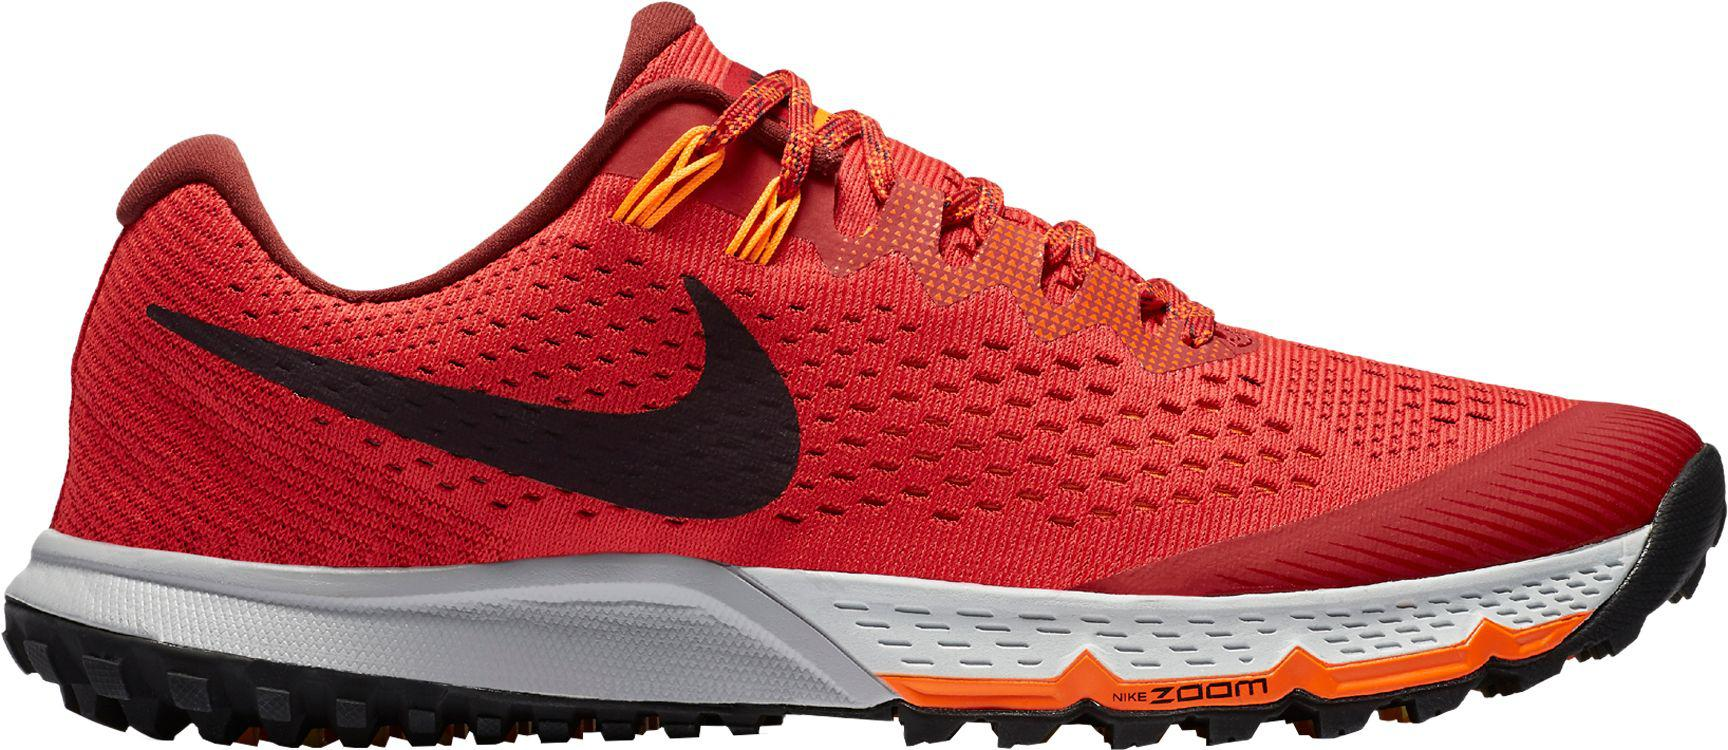 brand new 2ecba 467b3 Nike - Red Air Zoom Terra Kiger 4 Trail Running Shoes for Men - Lyst